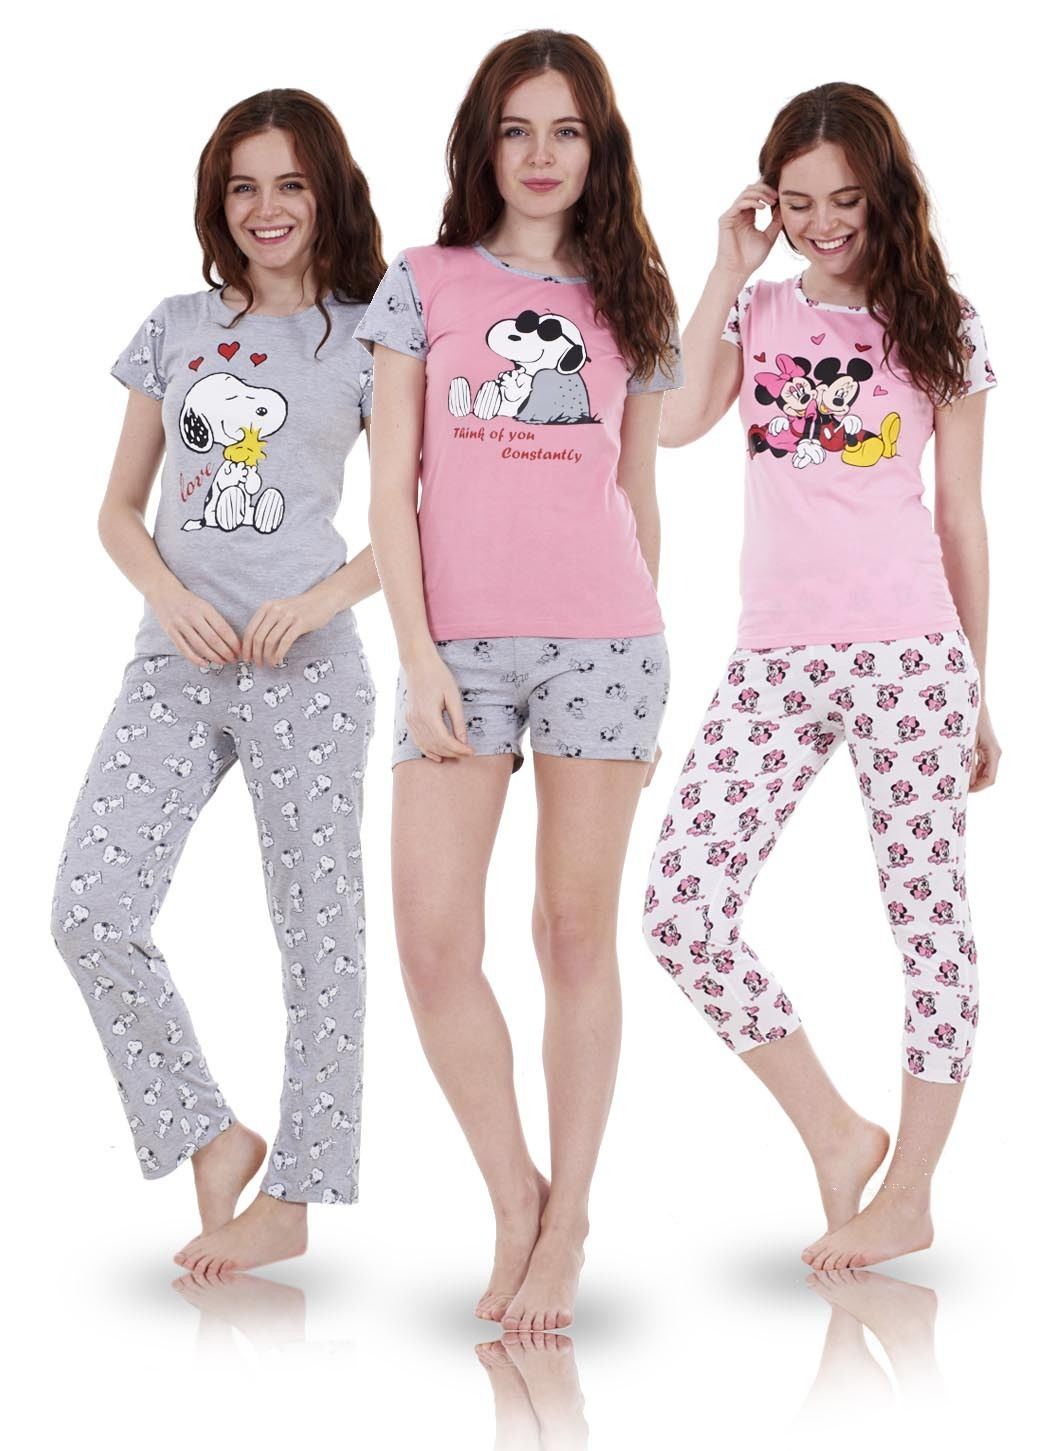 88608875c4e2 Sentinel Ladies Cute 2 PIECE Snoopy Pyjamas Girls Short Sleeve Mickie  Minnie Shorts PJ